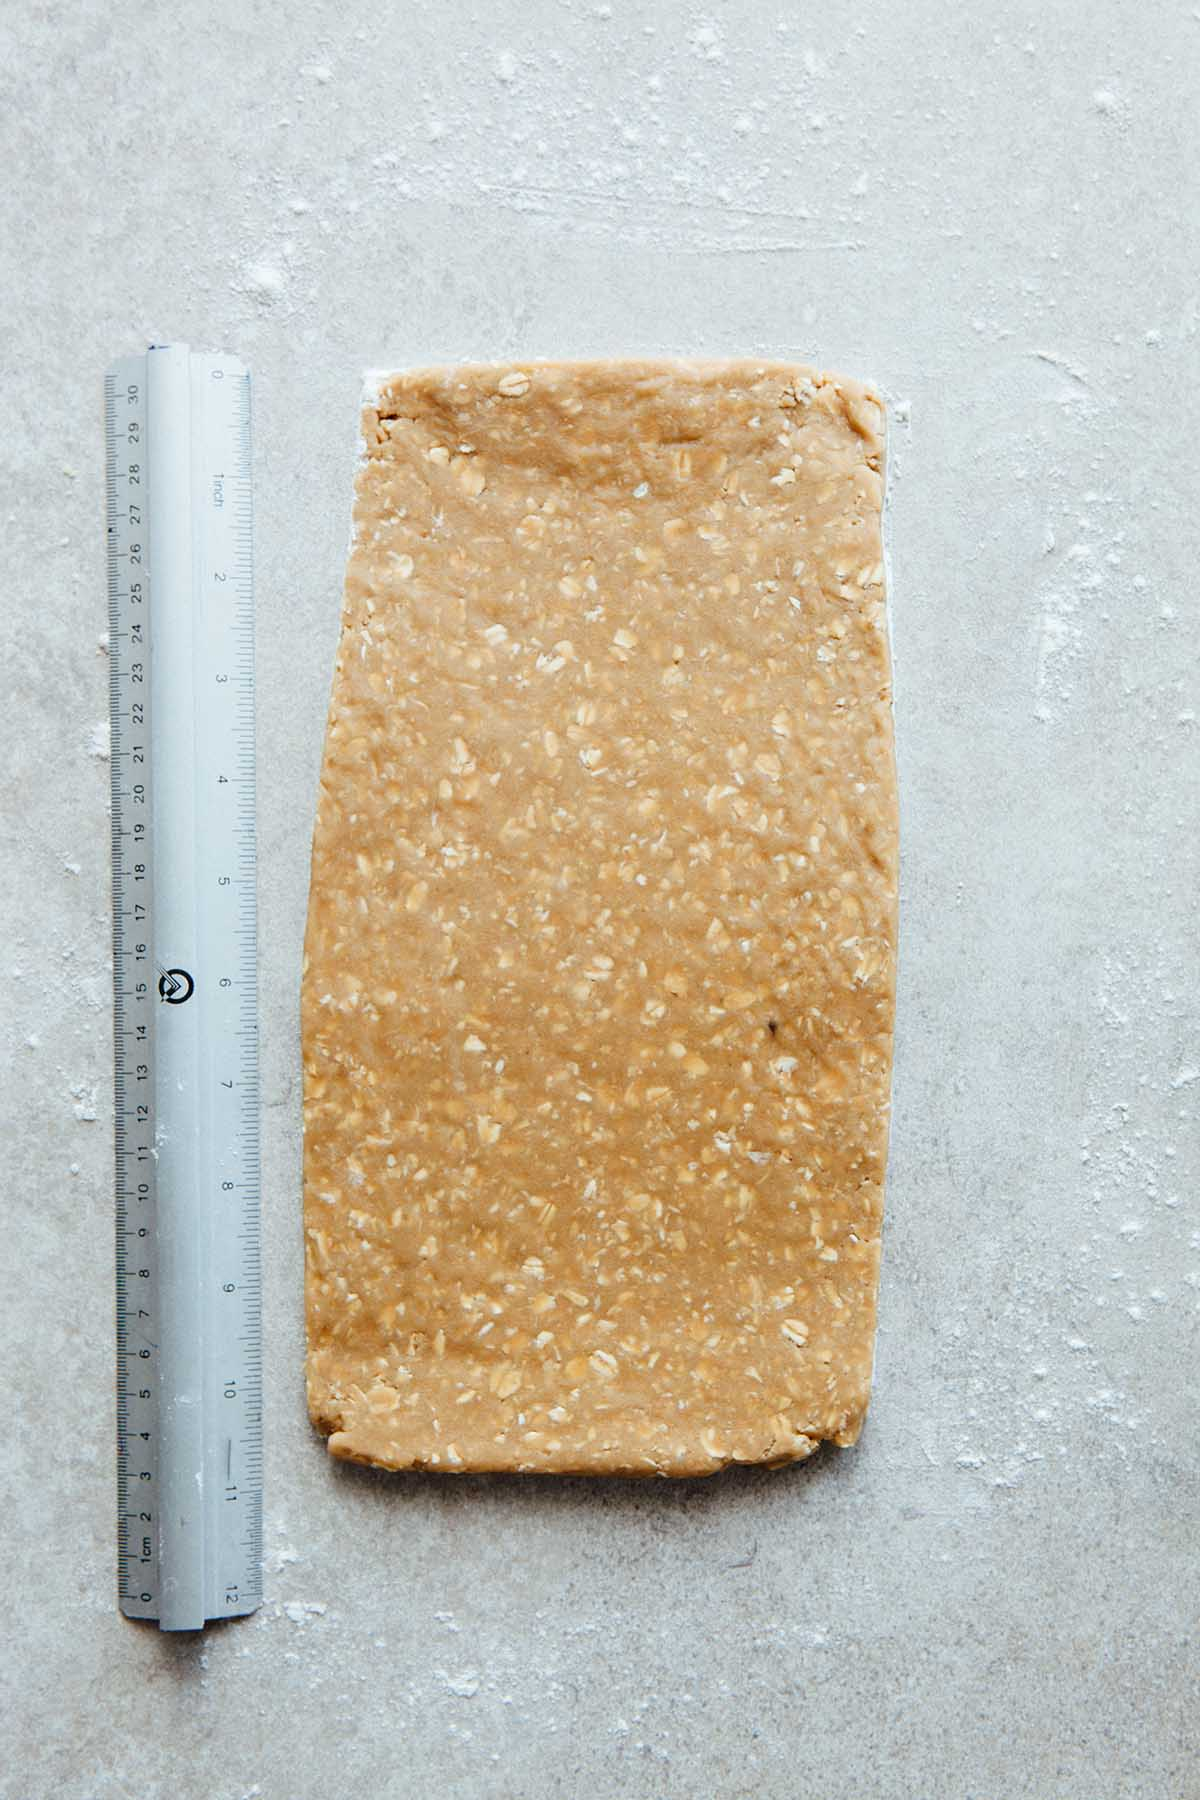 Rolled out oatcake dough with a ruler laying next to it to show size.